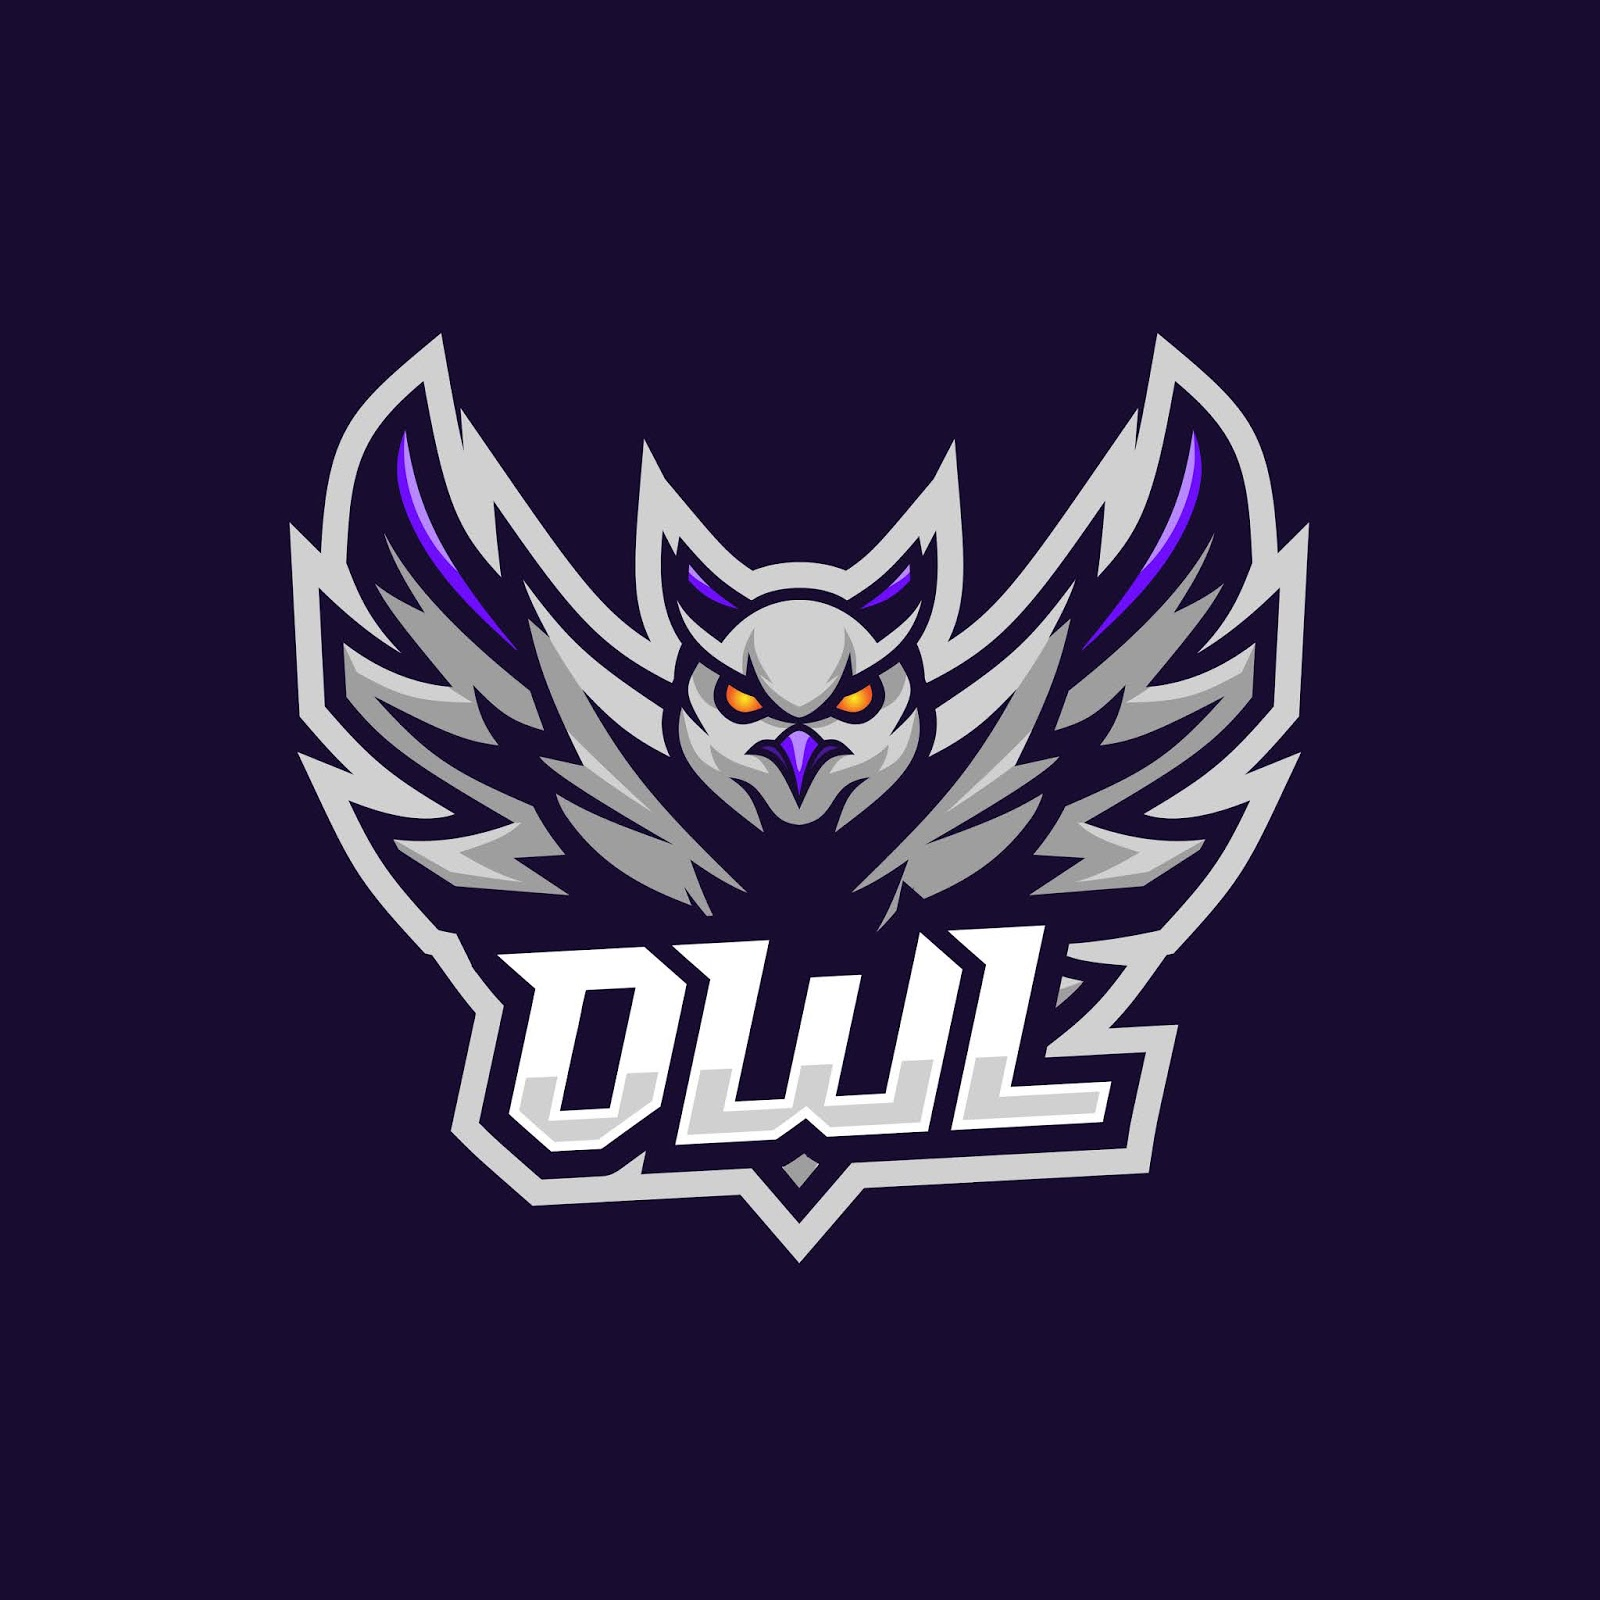 Owl Esport Logo Awesome Free Download Vector CDR, AI, EPS and PNG Formats